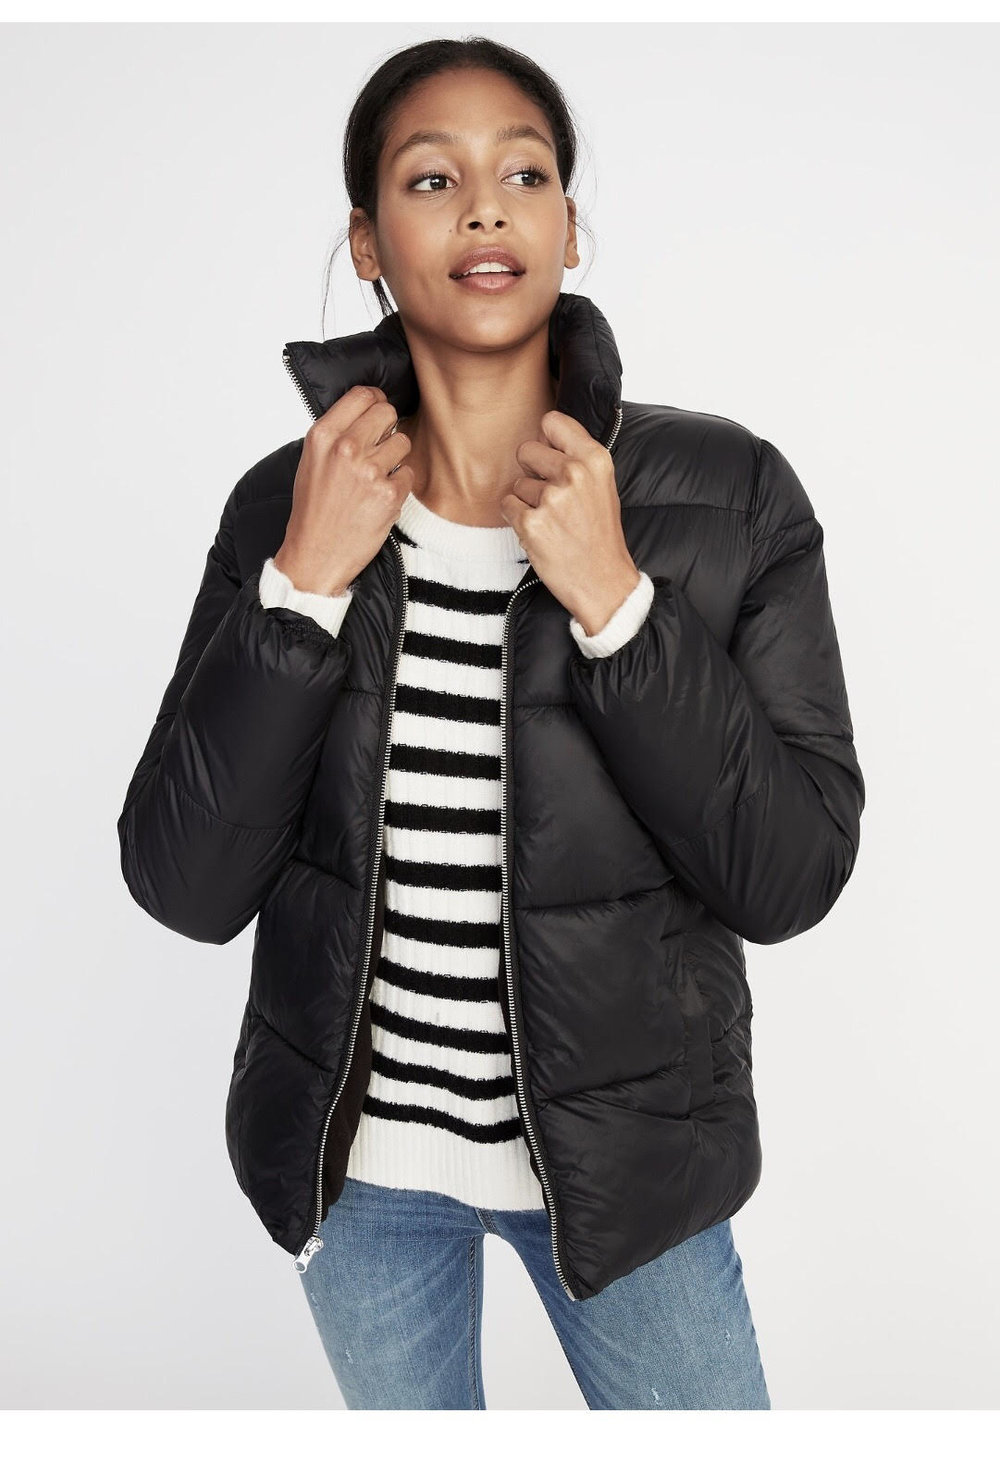 Old Navy Puffer Jacket.jpg